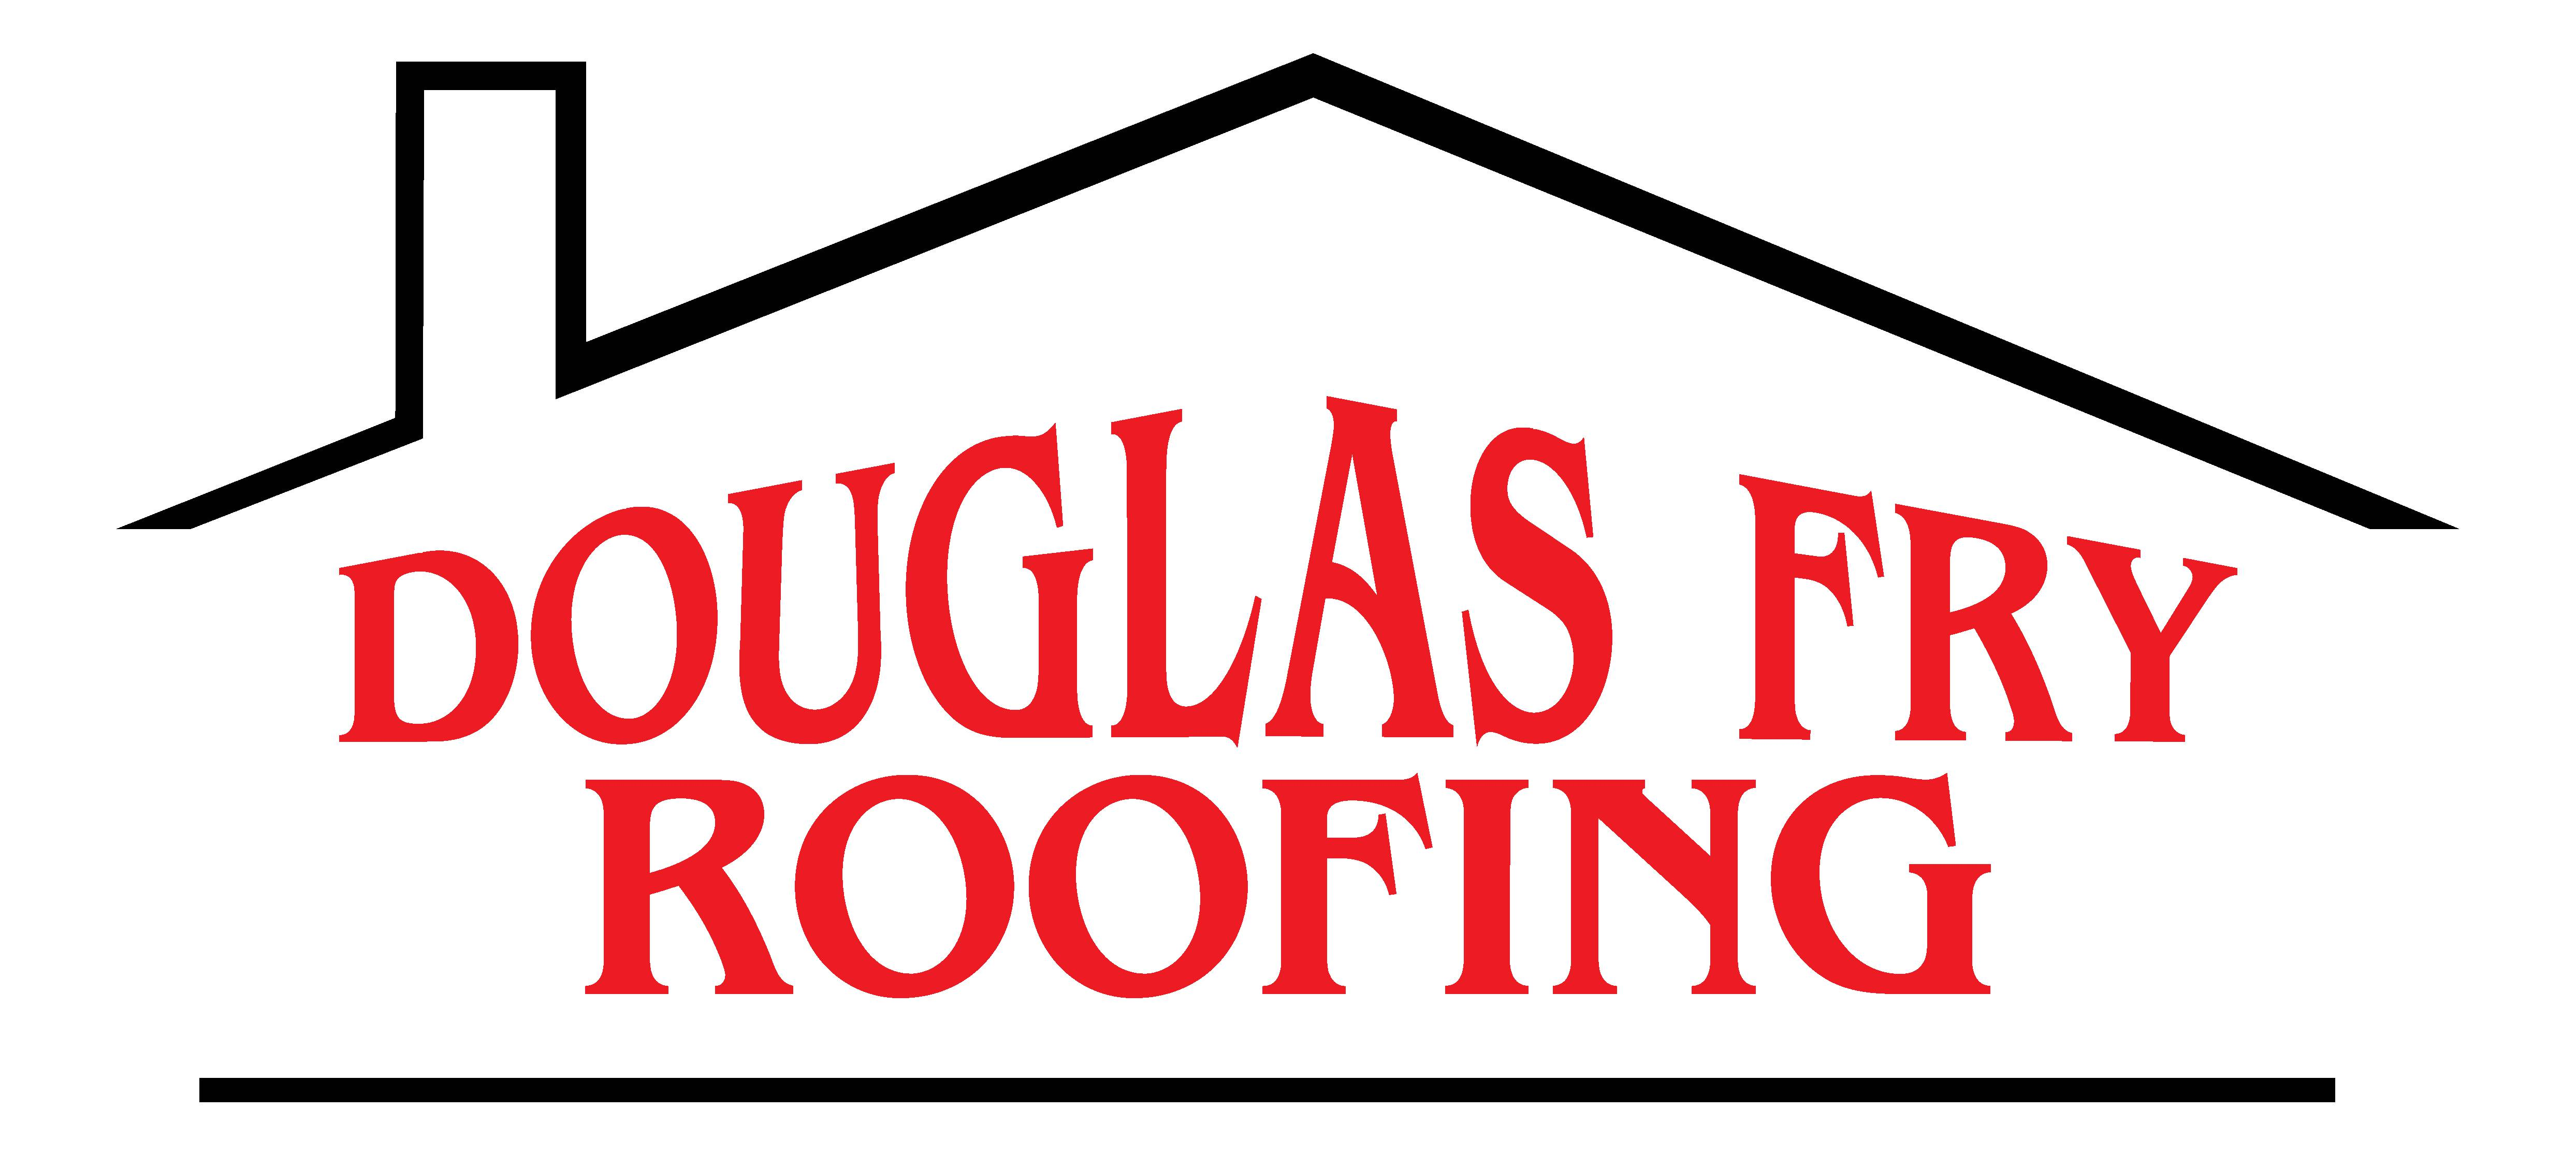 Doug Fry Roofing, Wichita Roofing Contractor, Douglas Fry Roofing